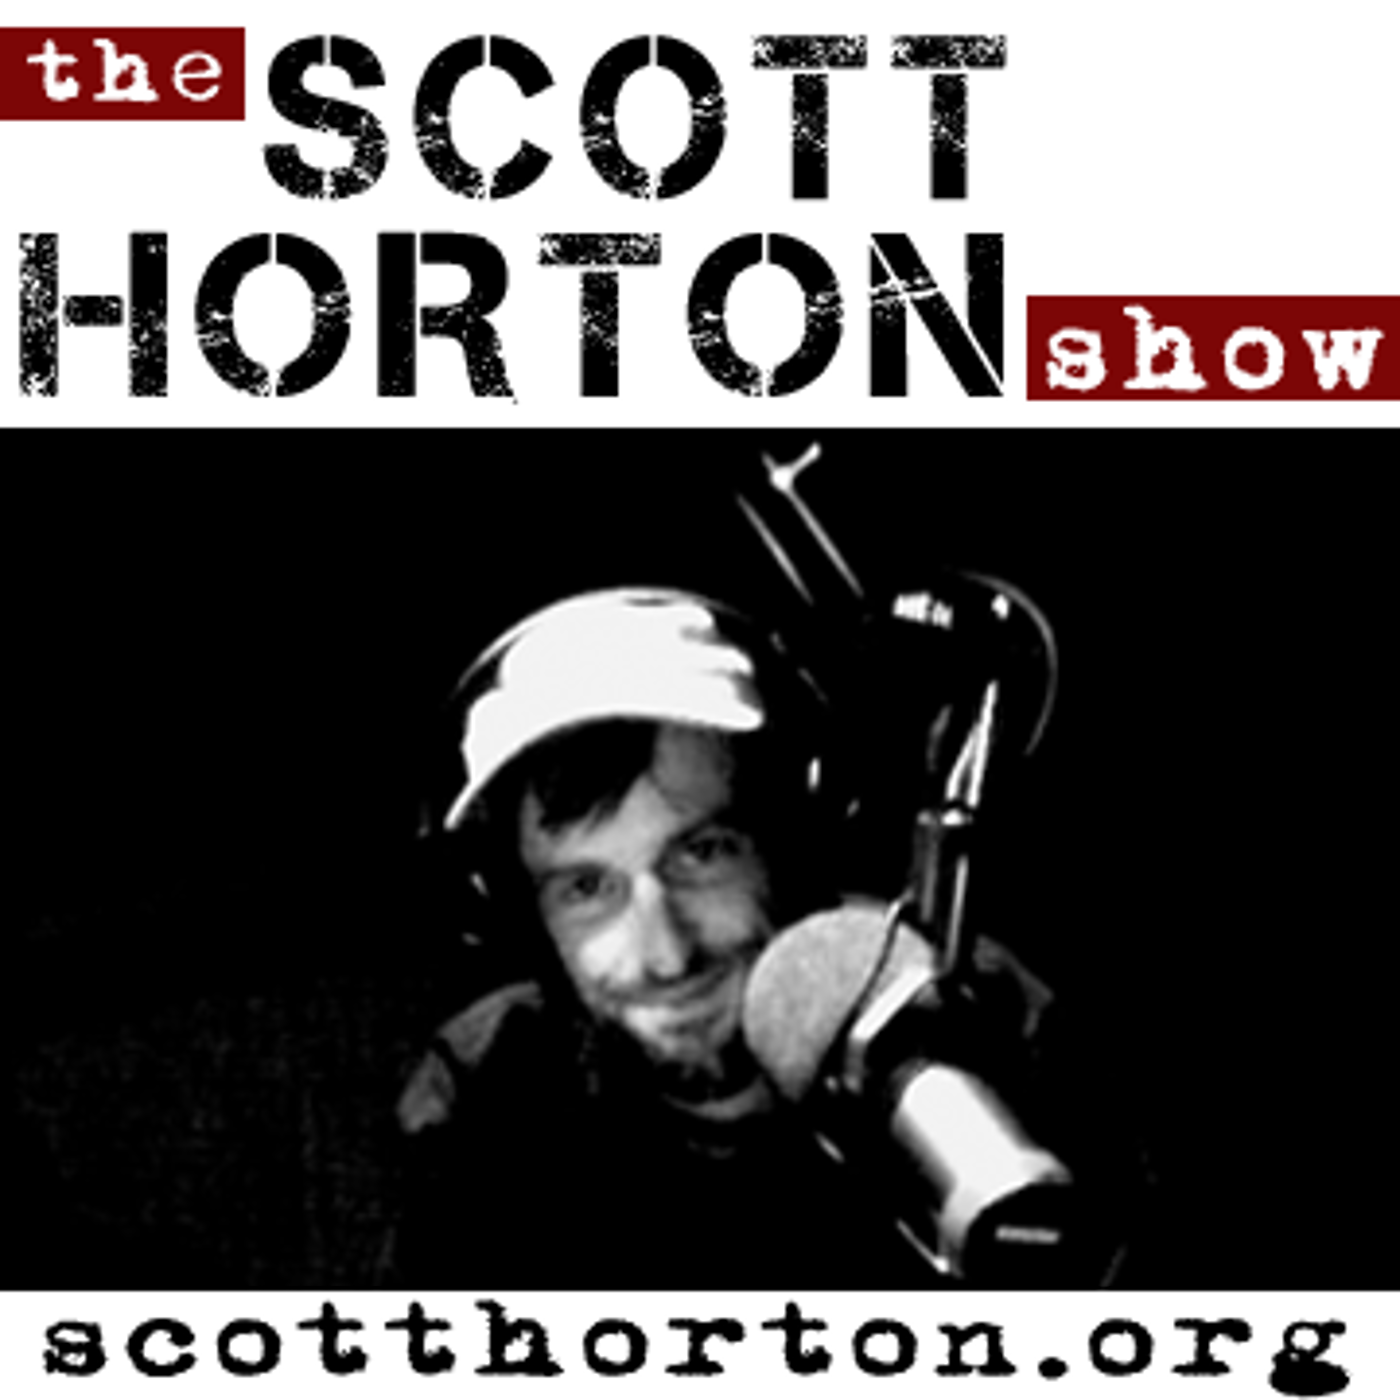 Scott Horton Show - Q & A Shows